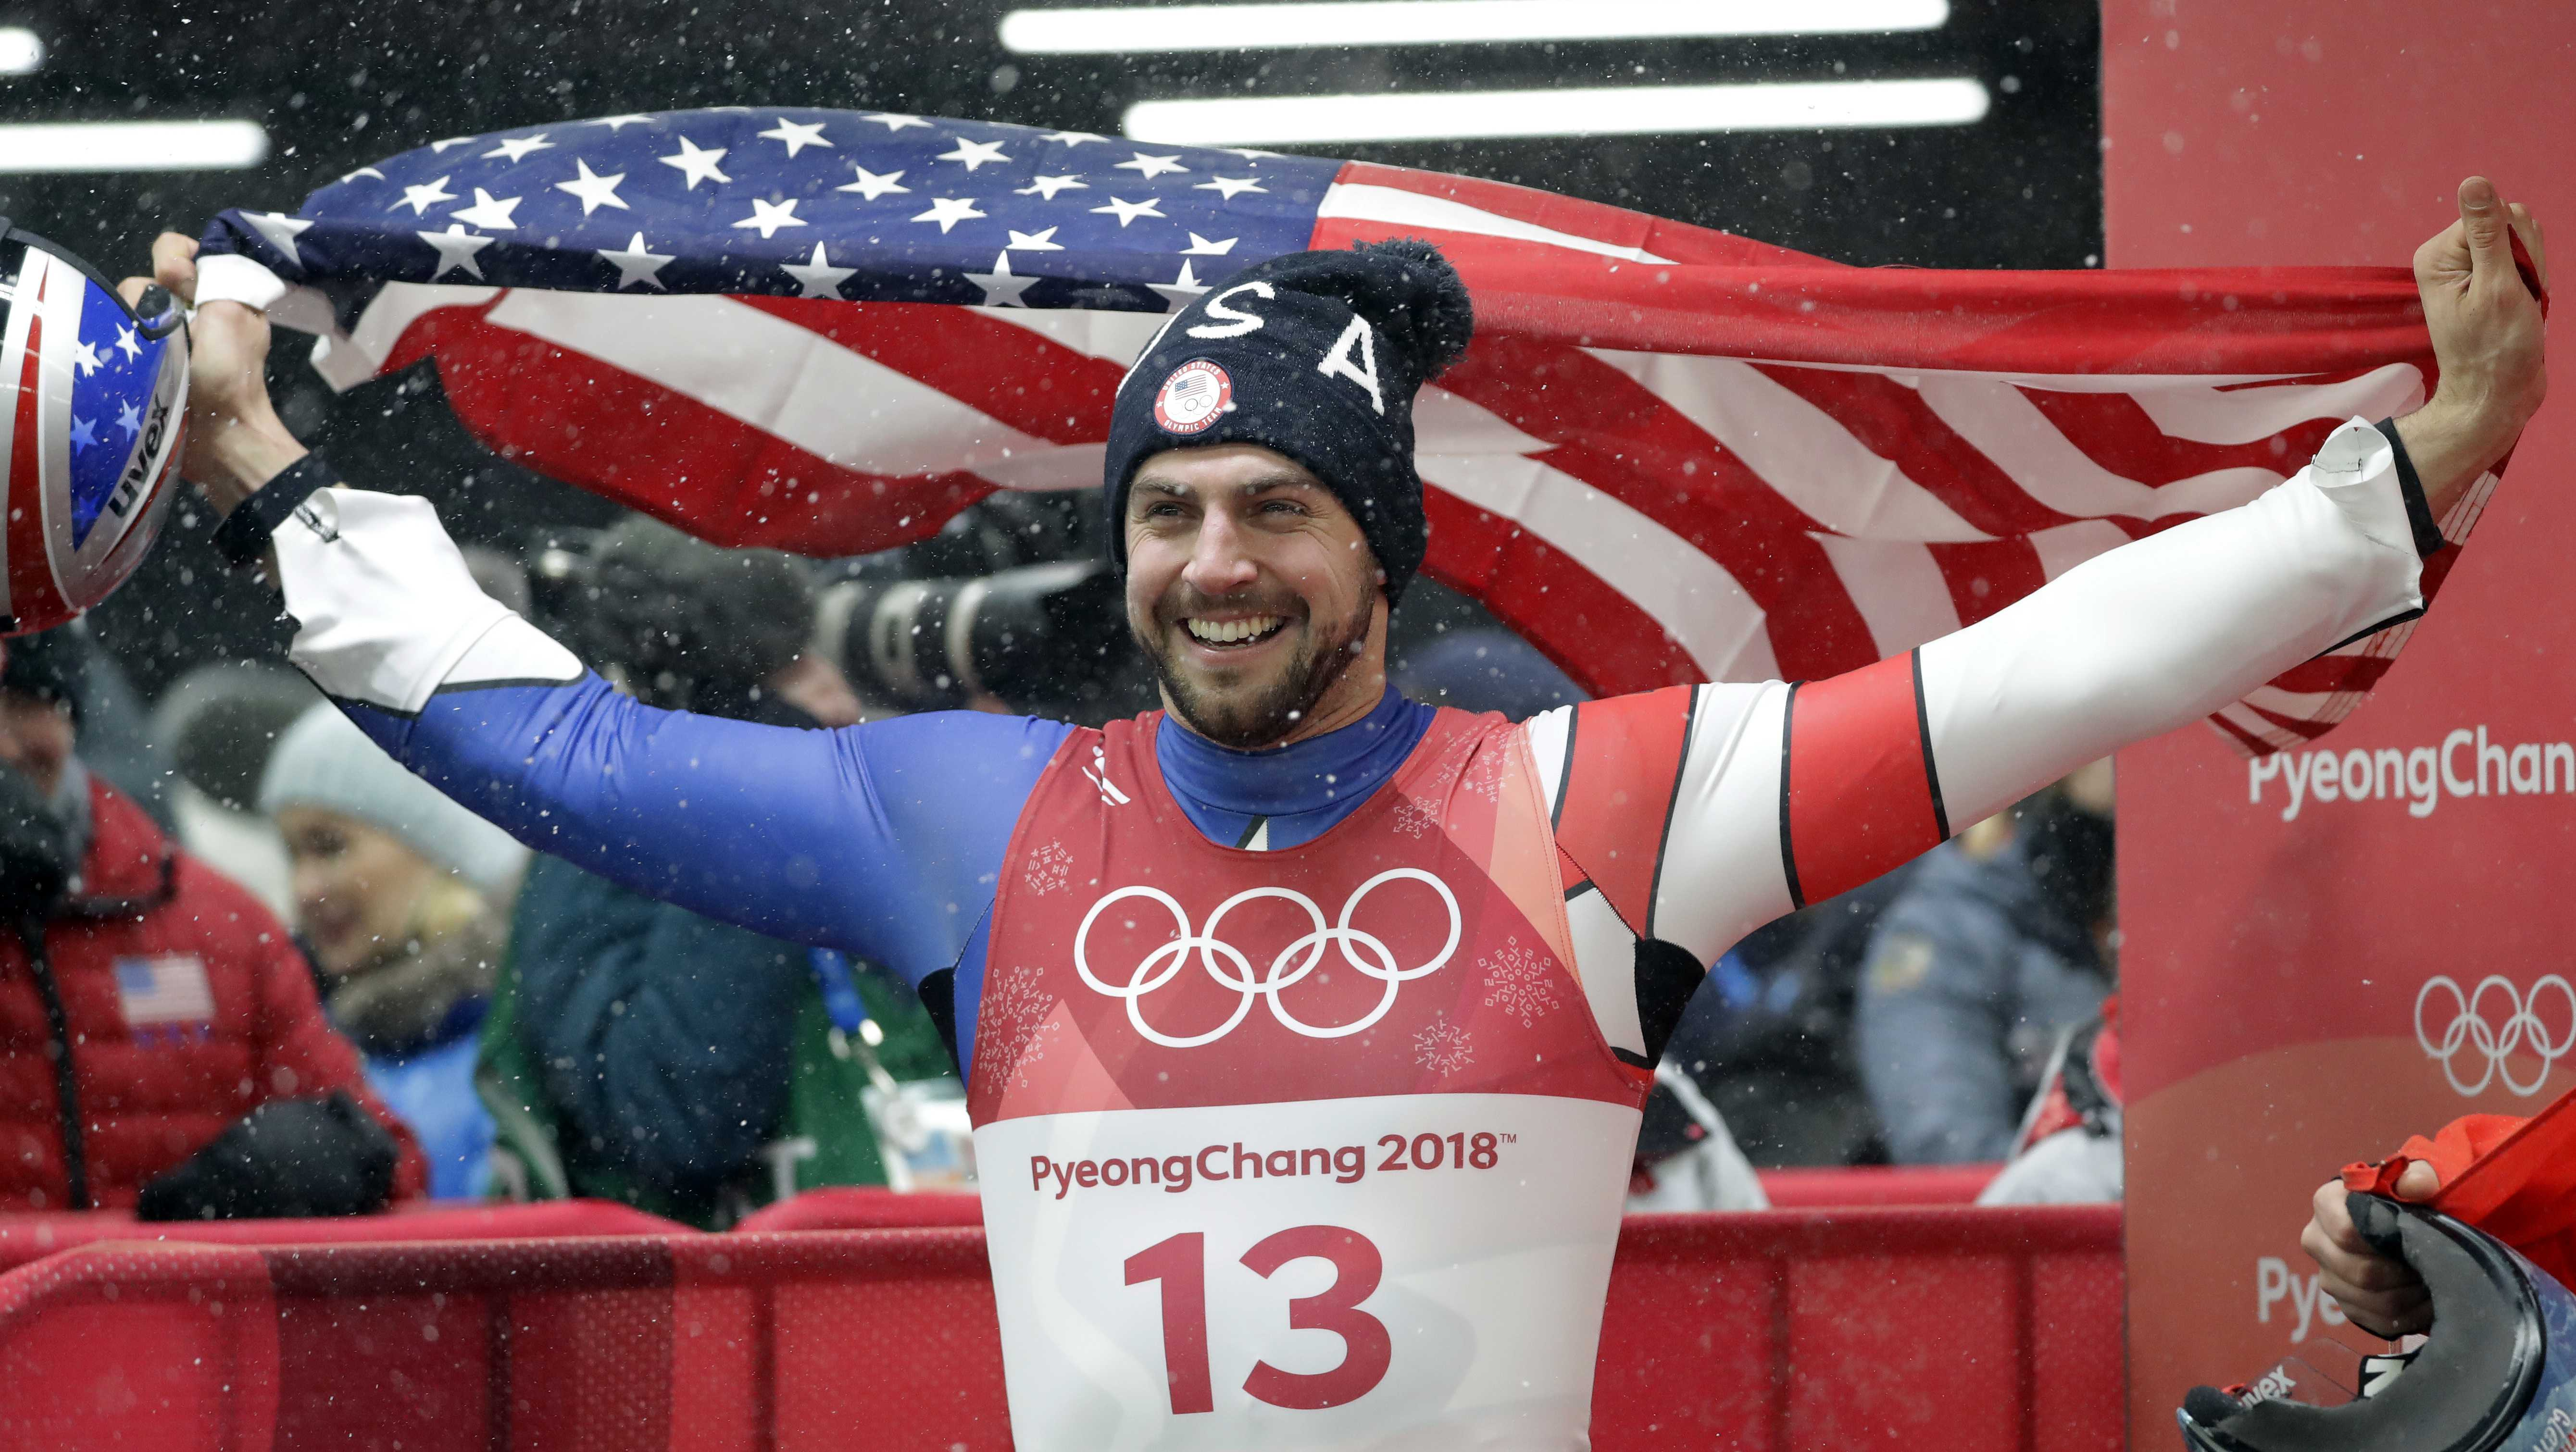 Chris Mazdzer of United States celebrates his silver medal win during final heats of the men's luge competition at the 2018 Winter Olympics in Pyeongchang, South Korea, Sunday, Feb. 11, 2018.